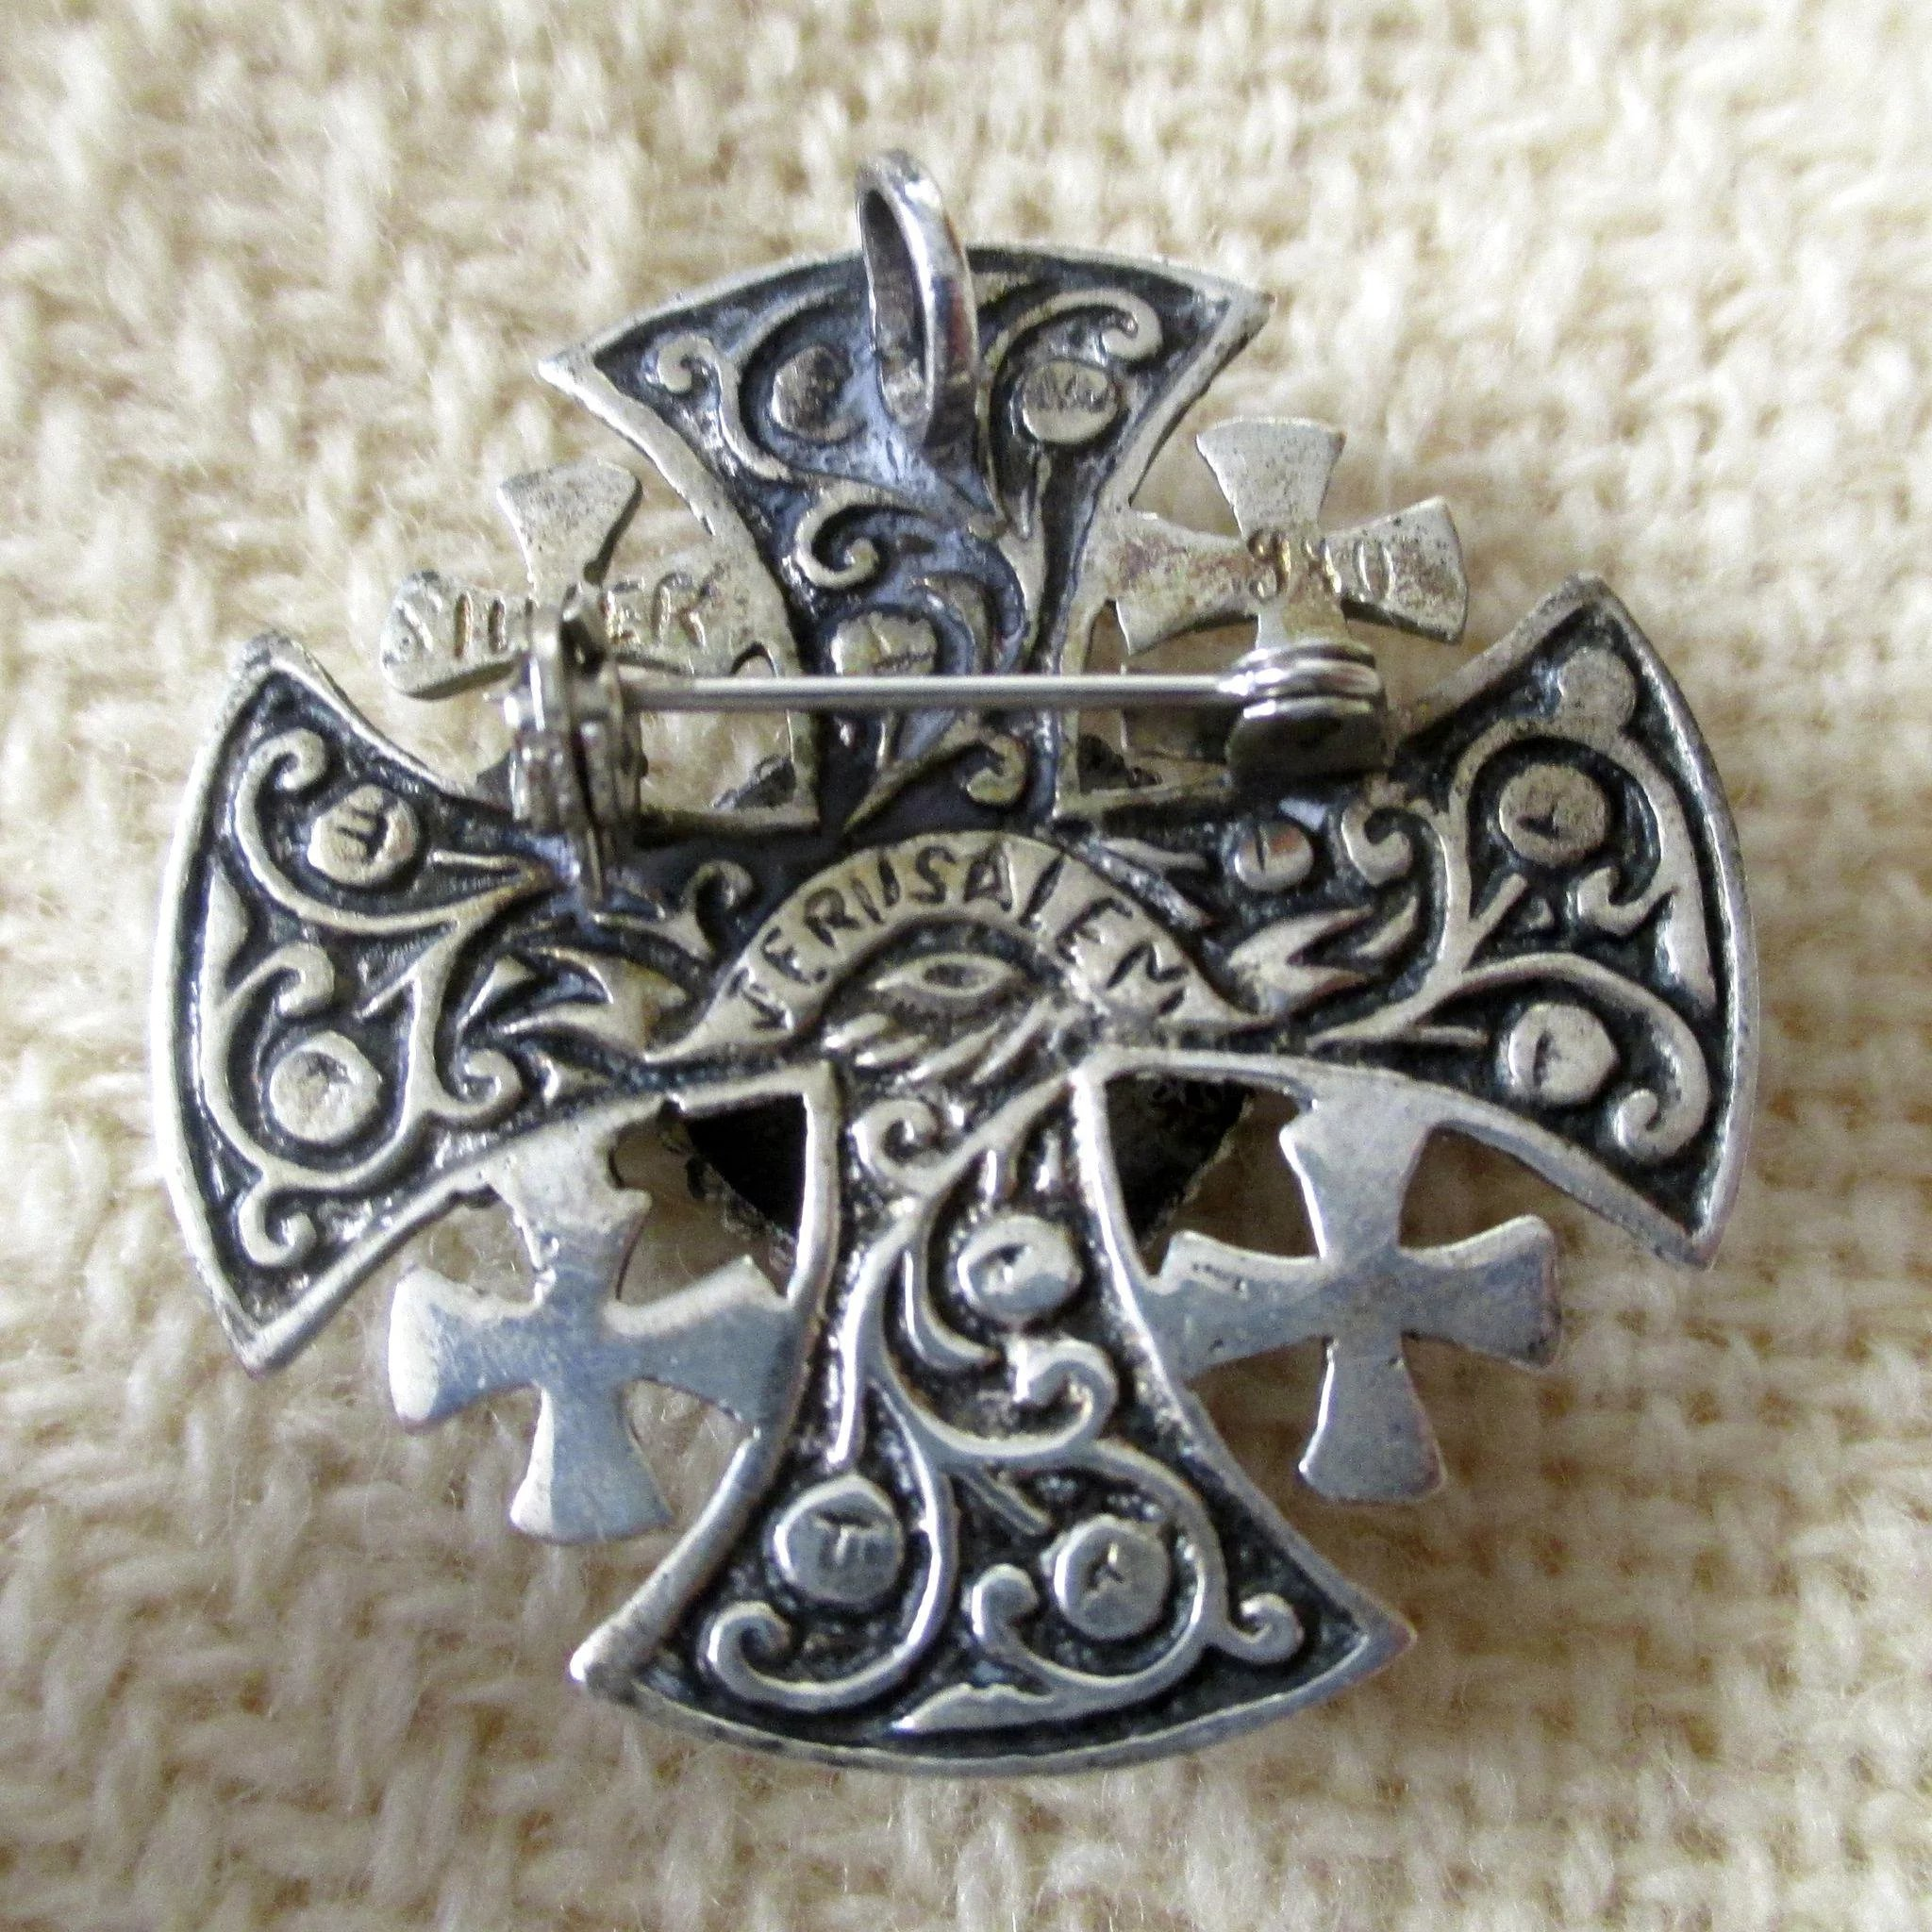 tone vintage jewelry christianity a handmade it cross pendant fullxfull middle fast silver two l eastern sterling products shipping heavy jerusalem il